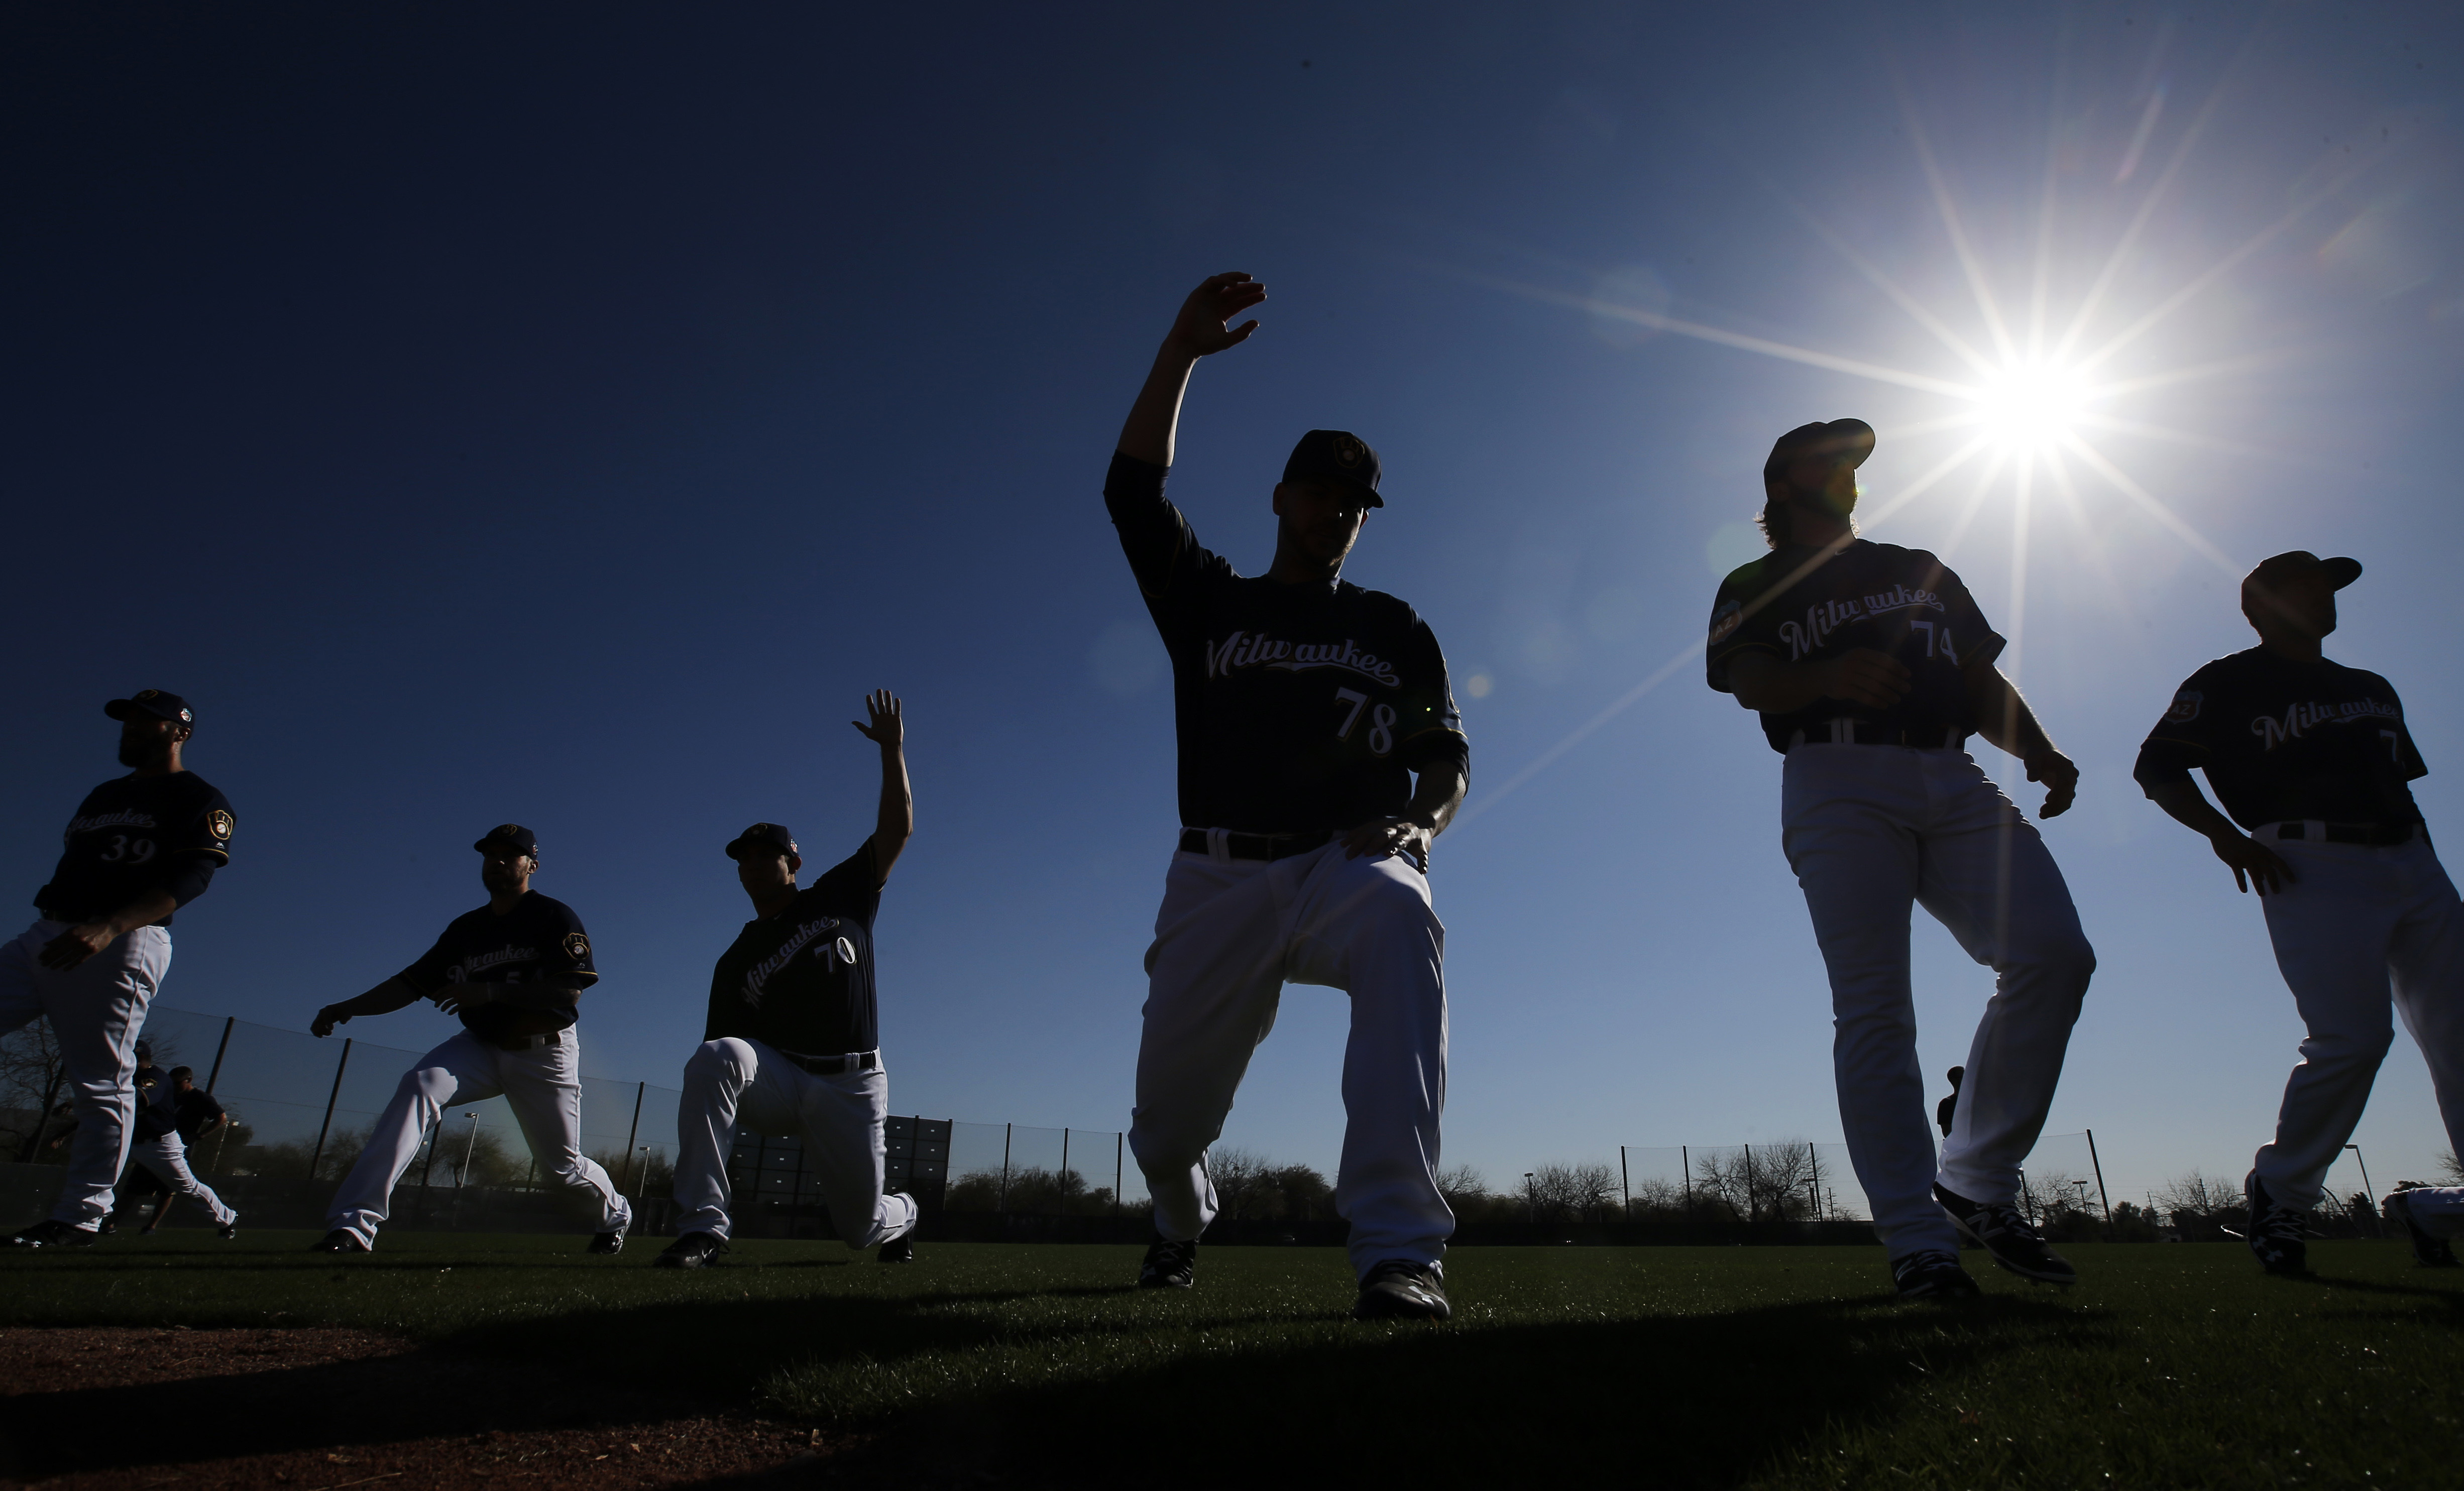 Milwaukee Brewers pitchers and catchers stretch during a spring training baseball workout Sunday, Feb. 21, 2016, in Phoenix. (AP Photo/Morry Gash)